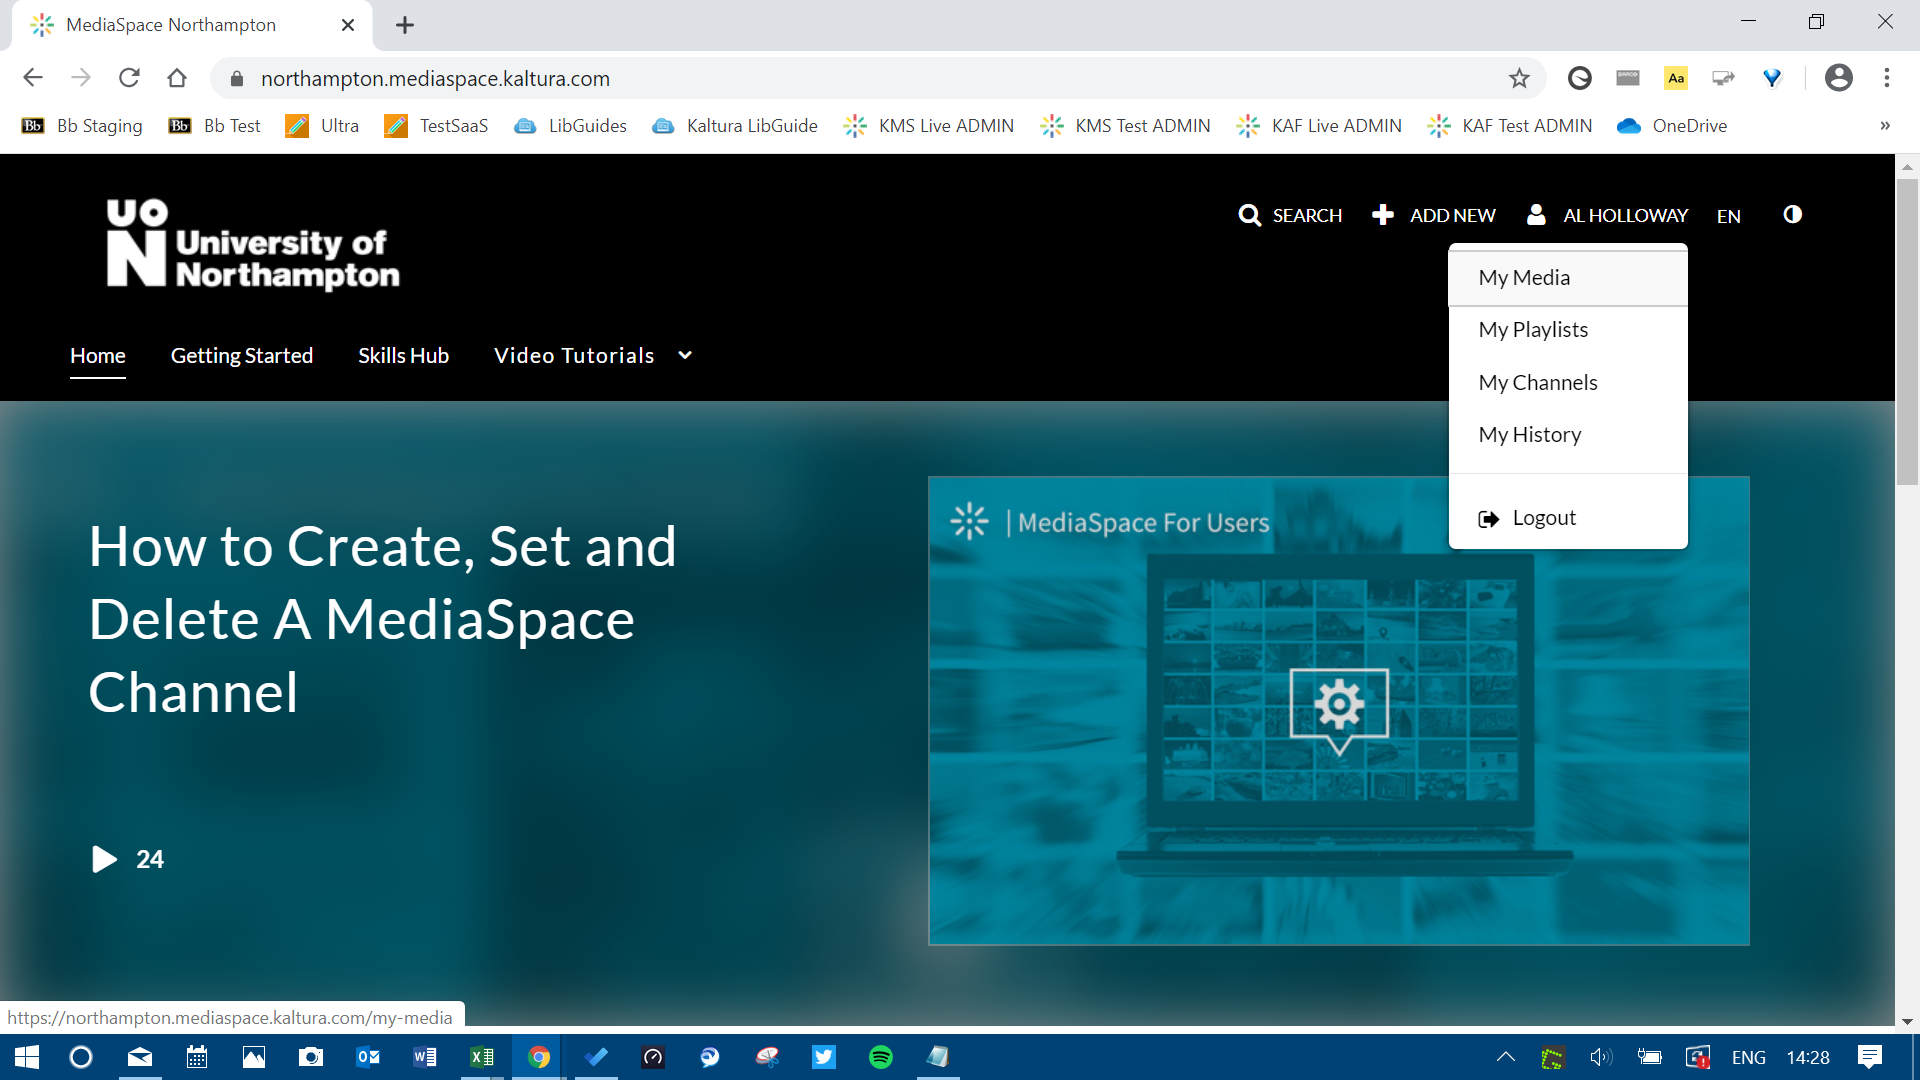 A screenshot of the MediaSpace landing page.